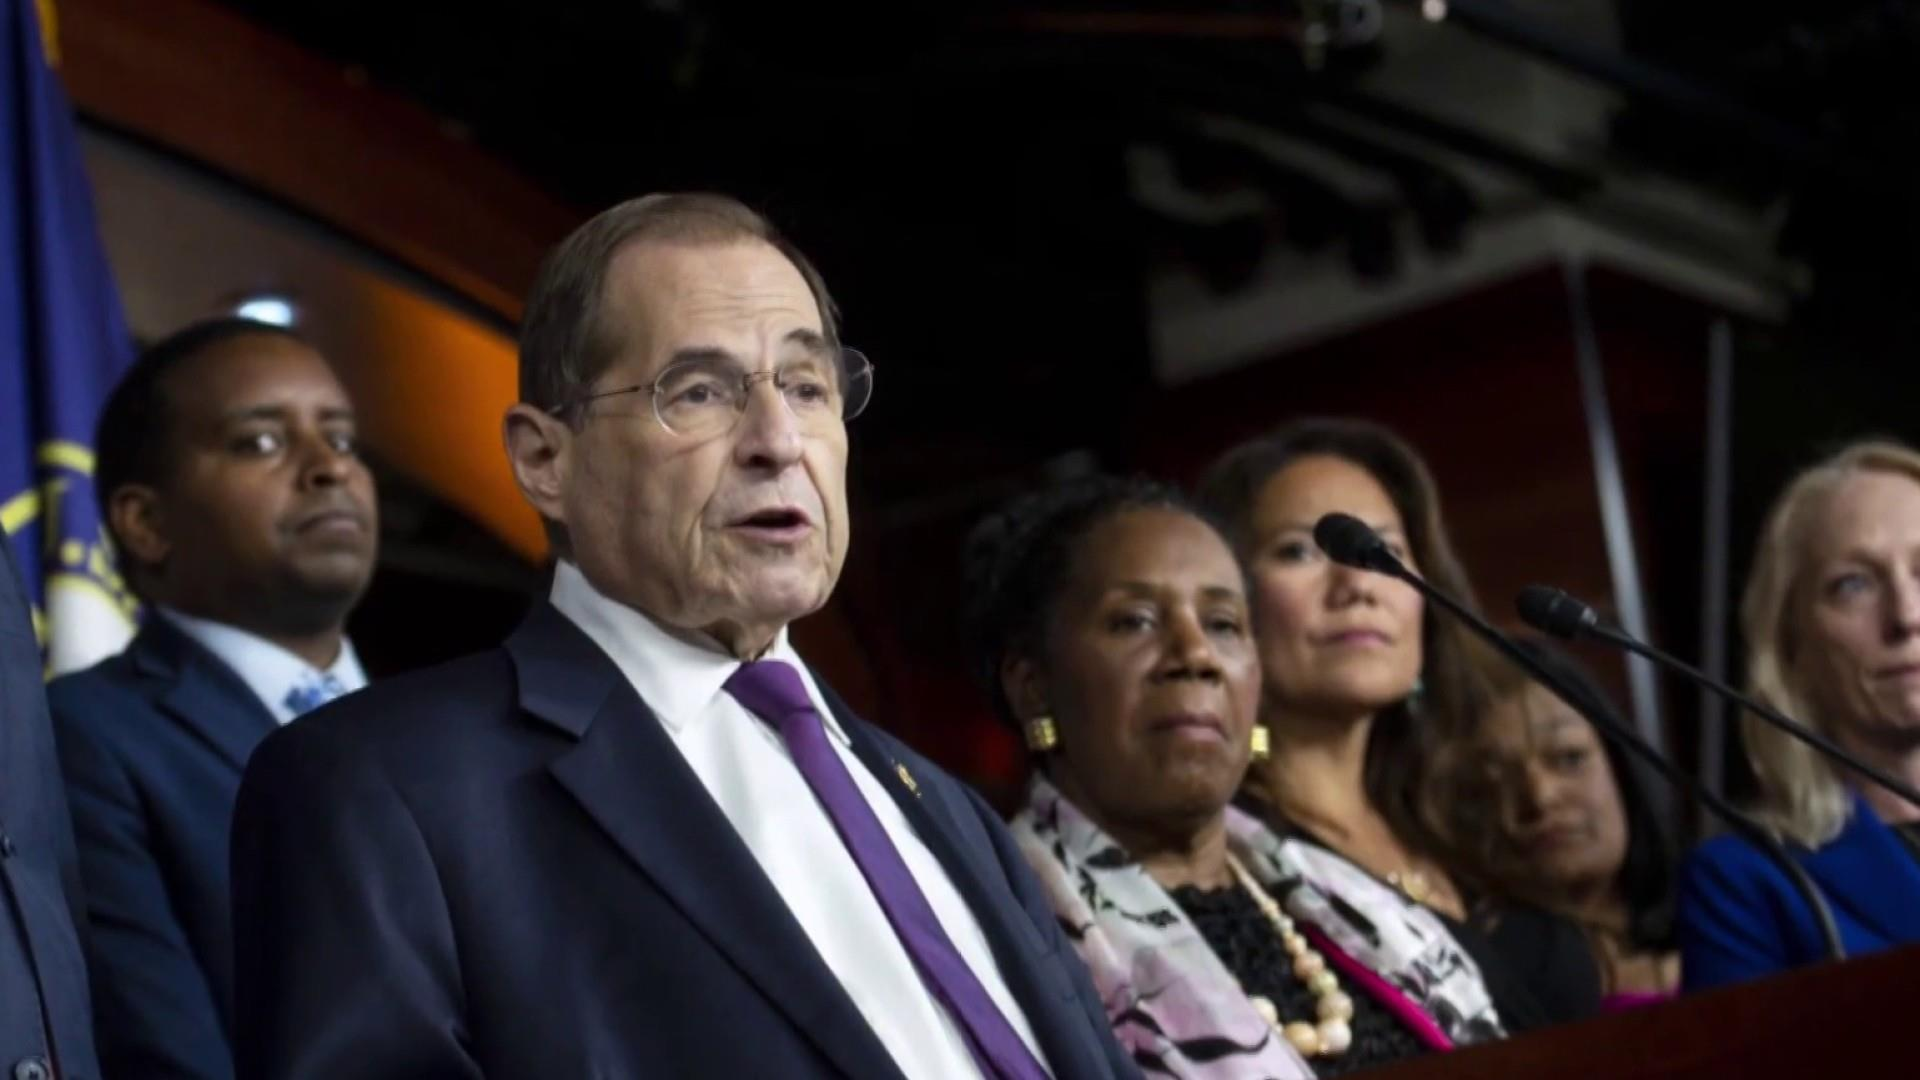 Rep. Nadler suggests his committee is already conducting an impeachment inquiry